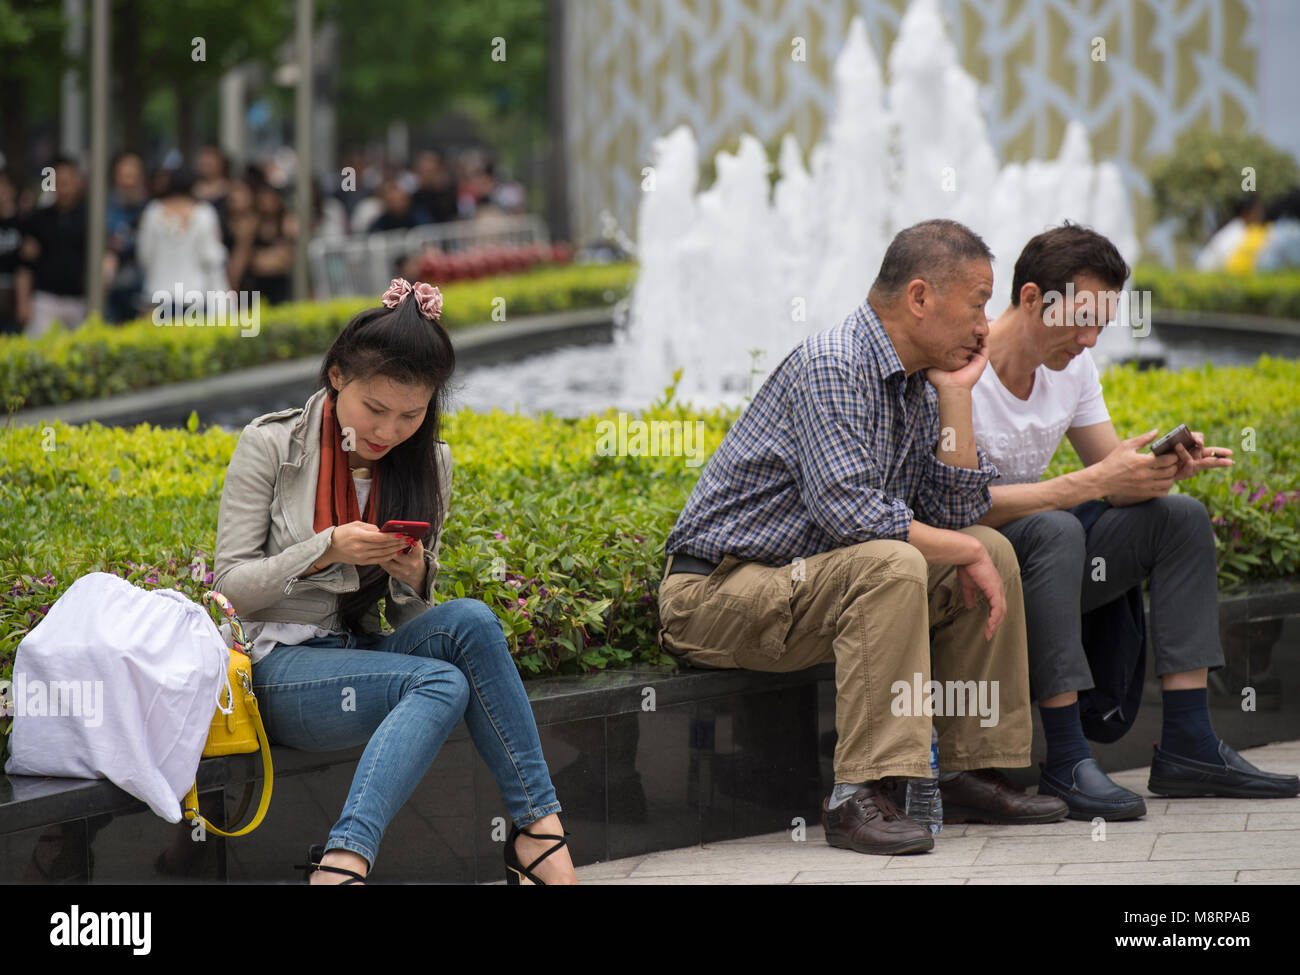 People using their mobile phones in Shanghai, China - Stock Image